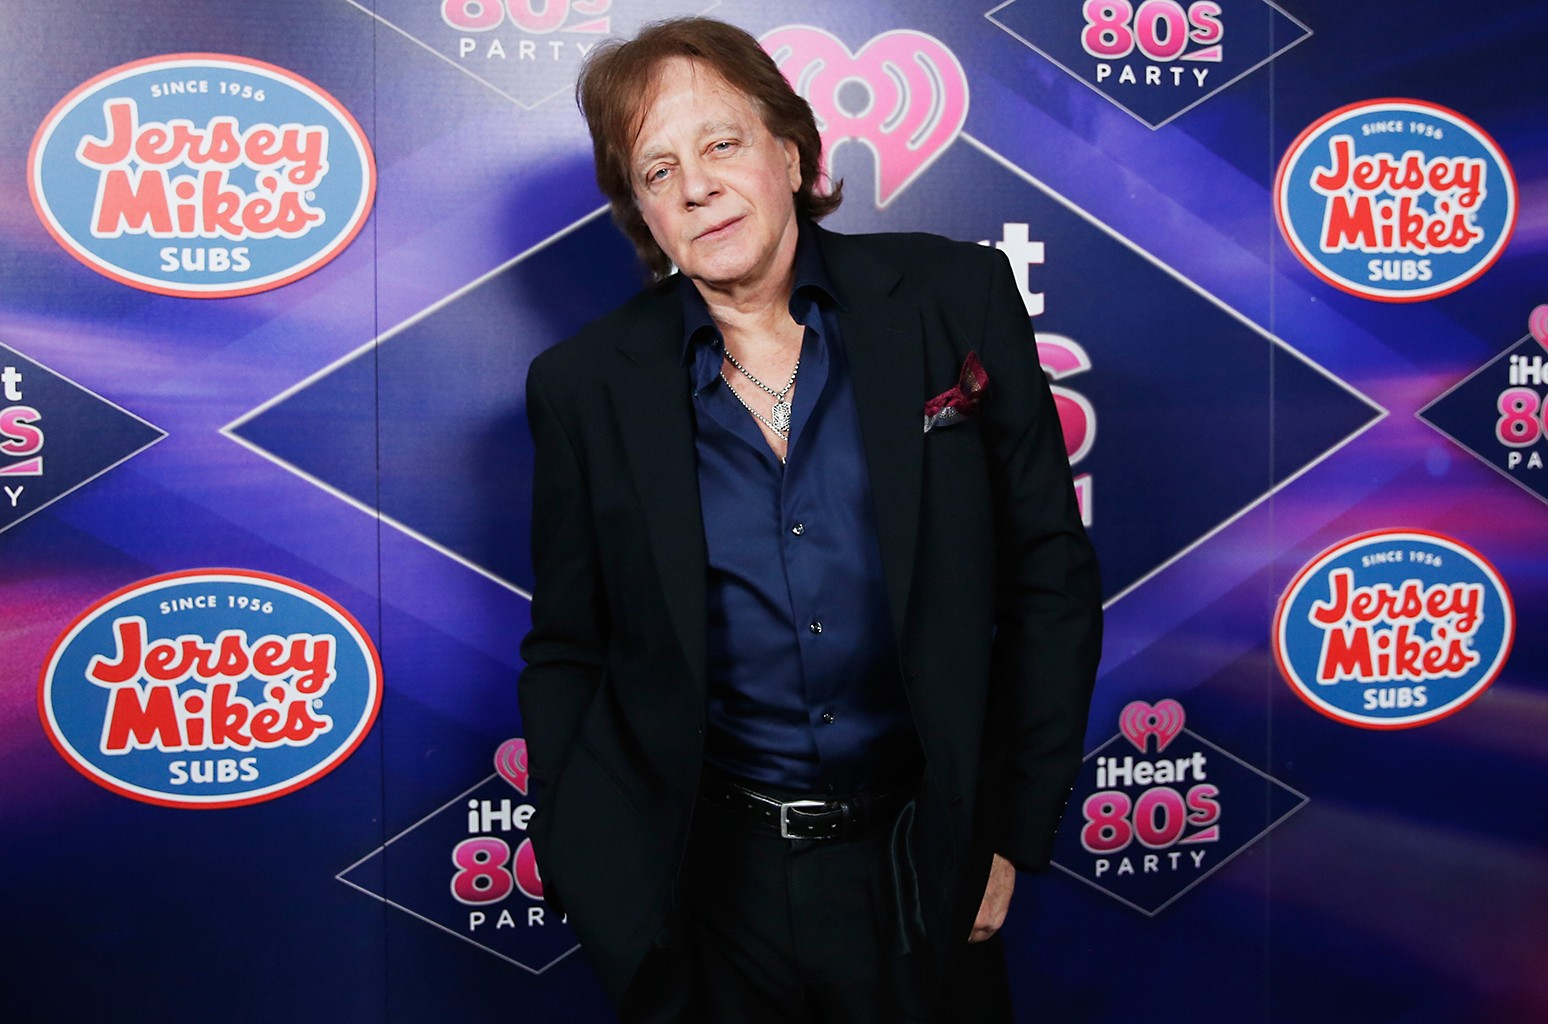 Eddie Money attends the iHeart80s Party 2017 at SAP Center on Jan. 28, 2017 in San Jose, Calif.